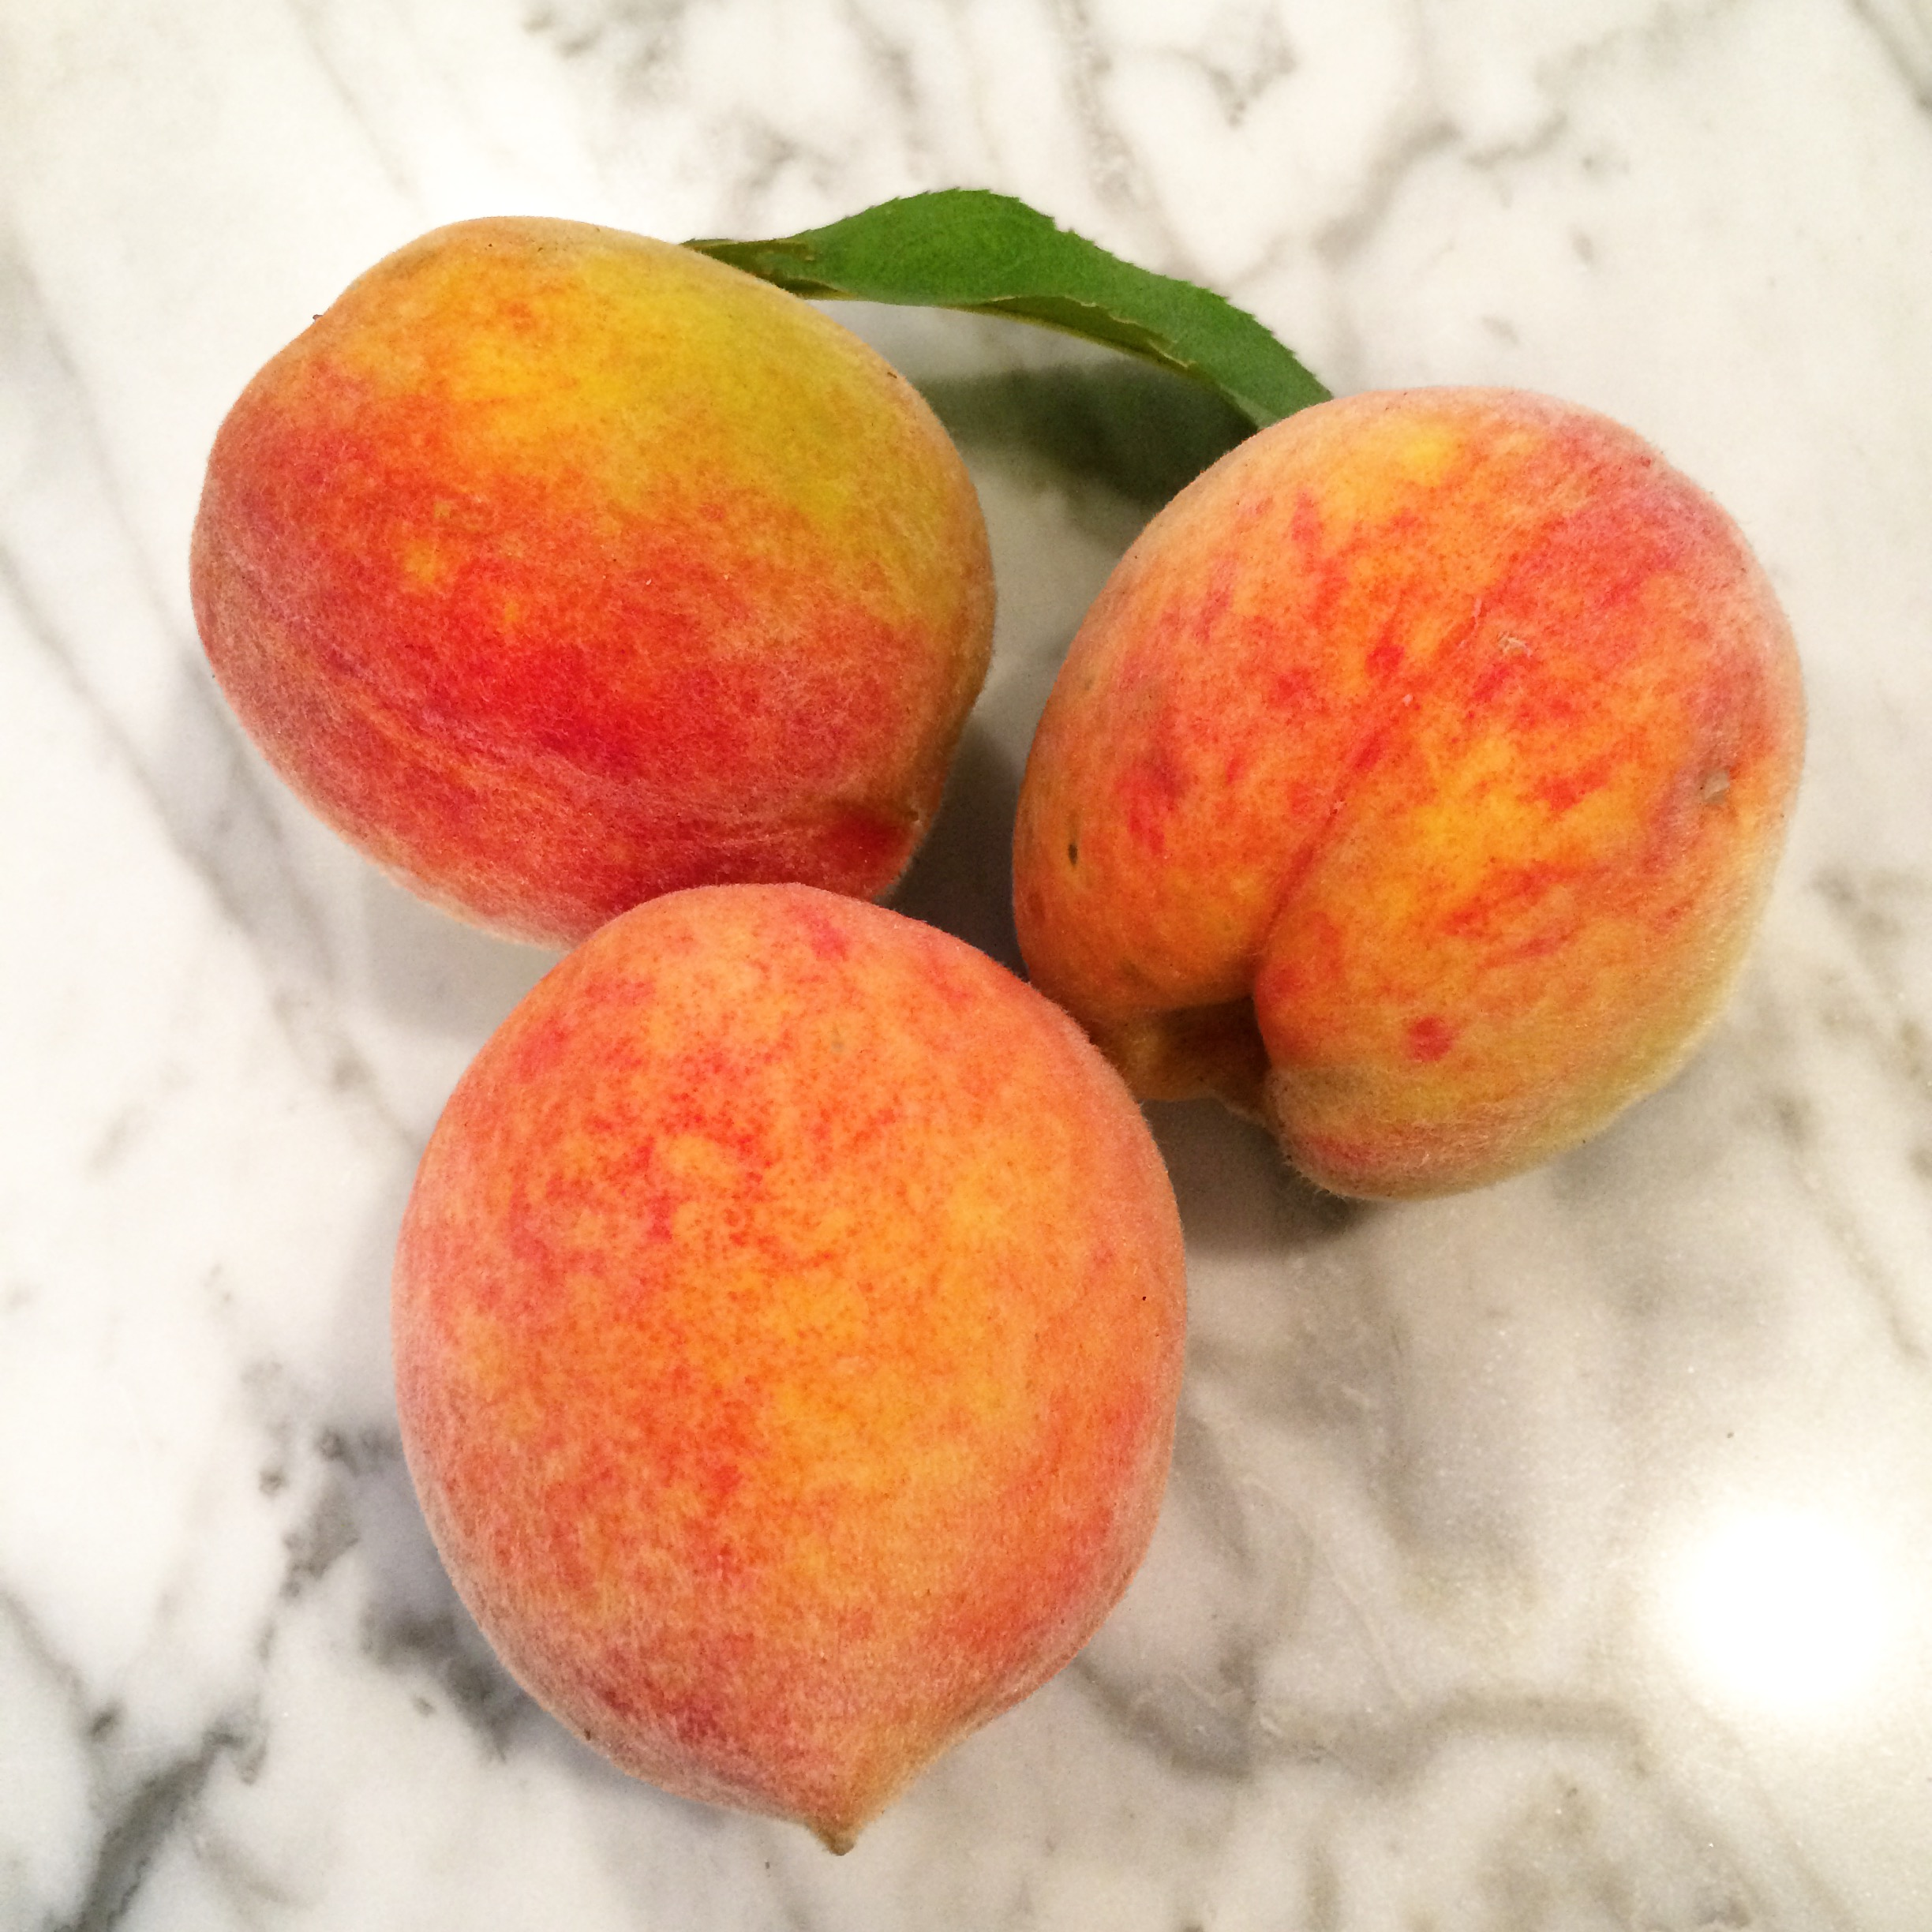 Summer Fruit - Peaches